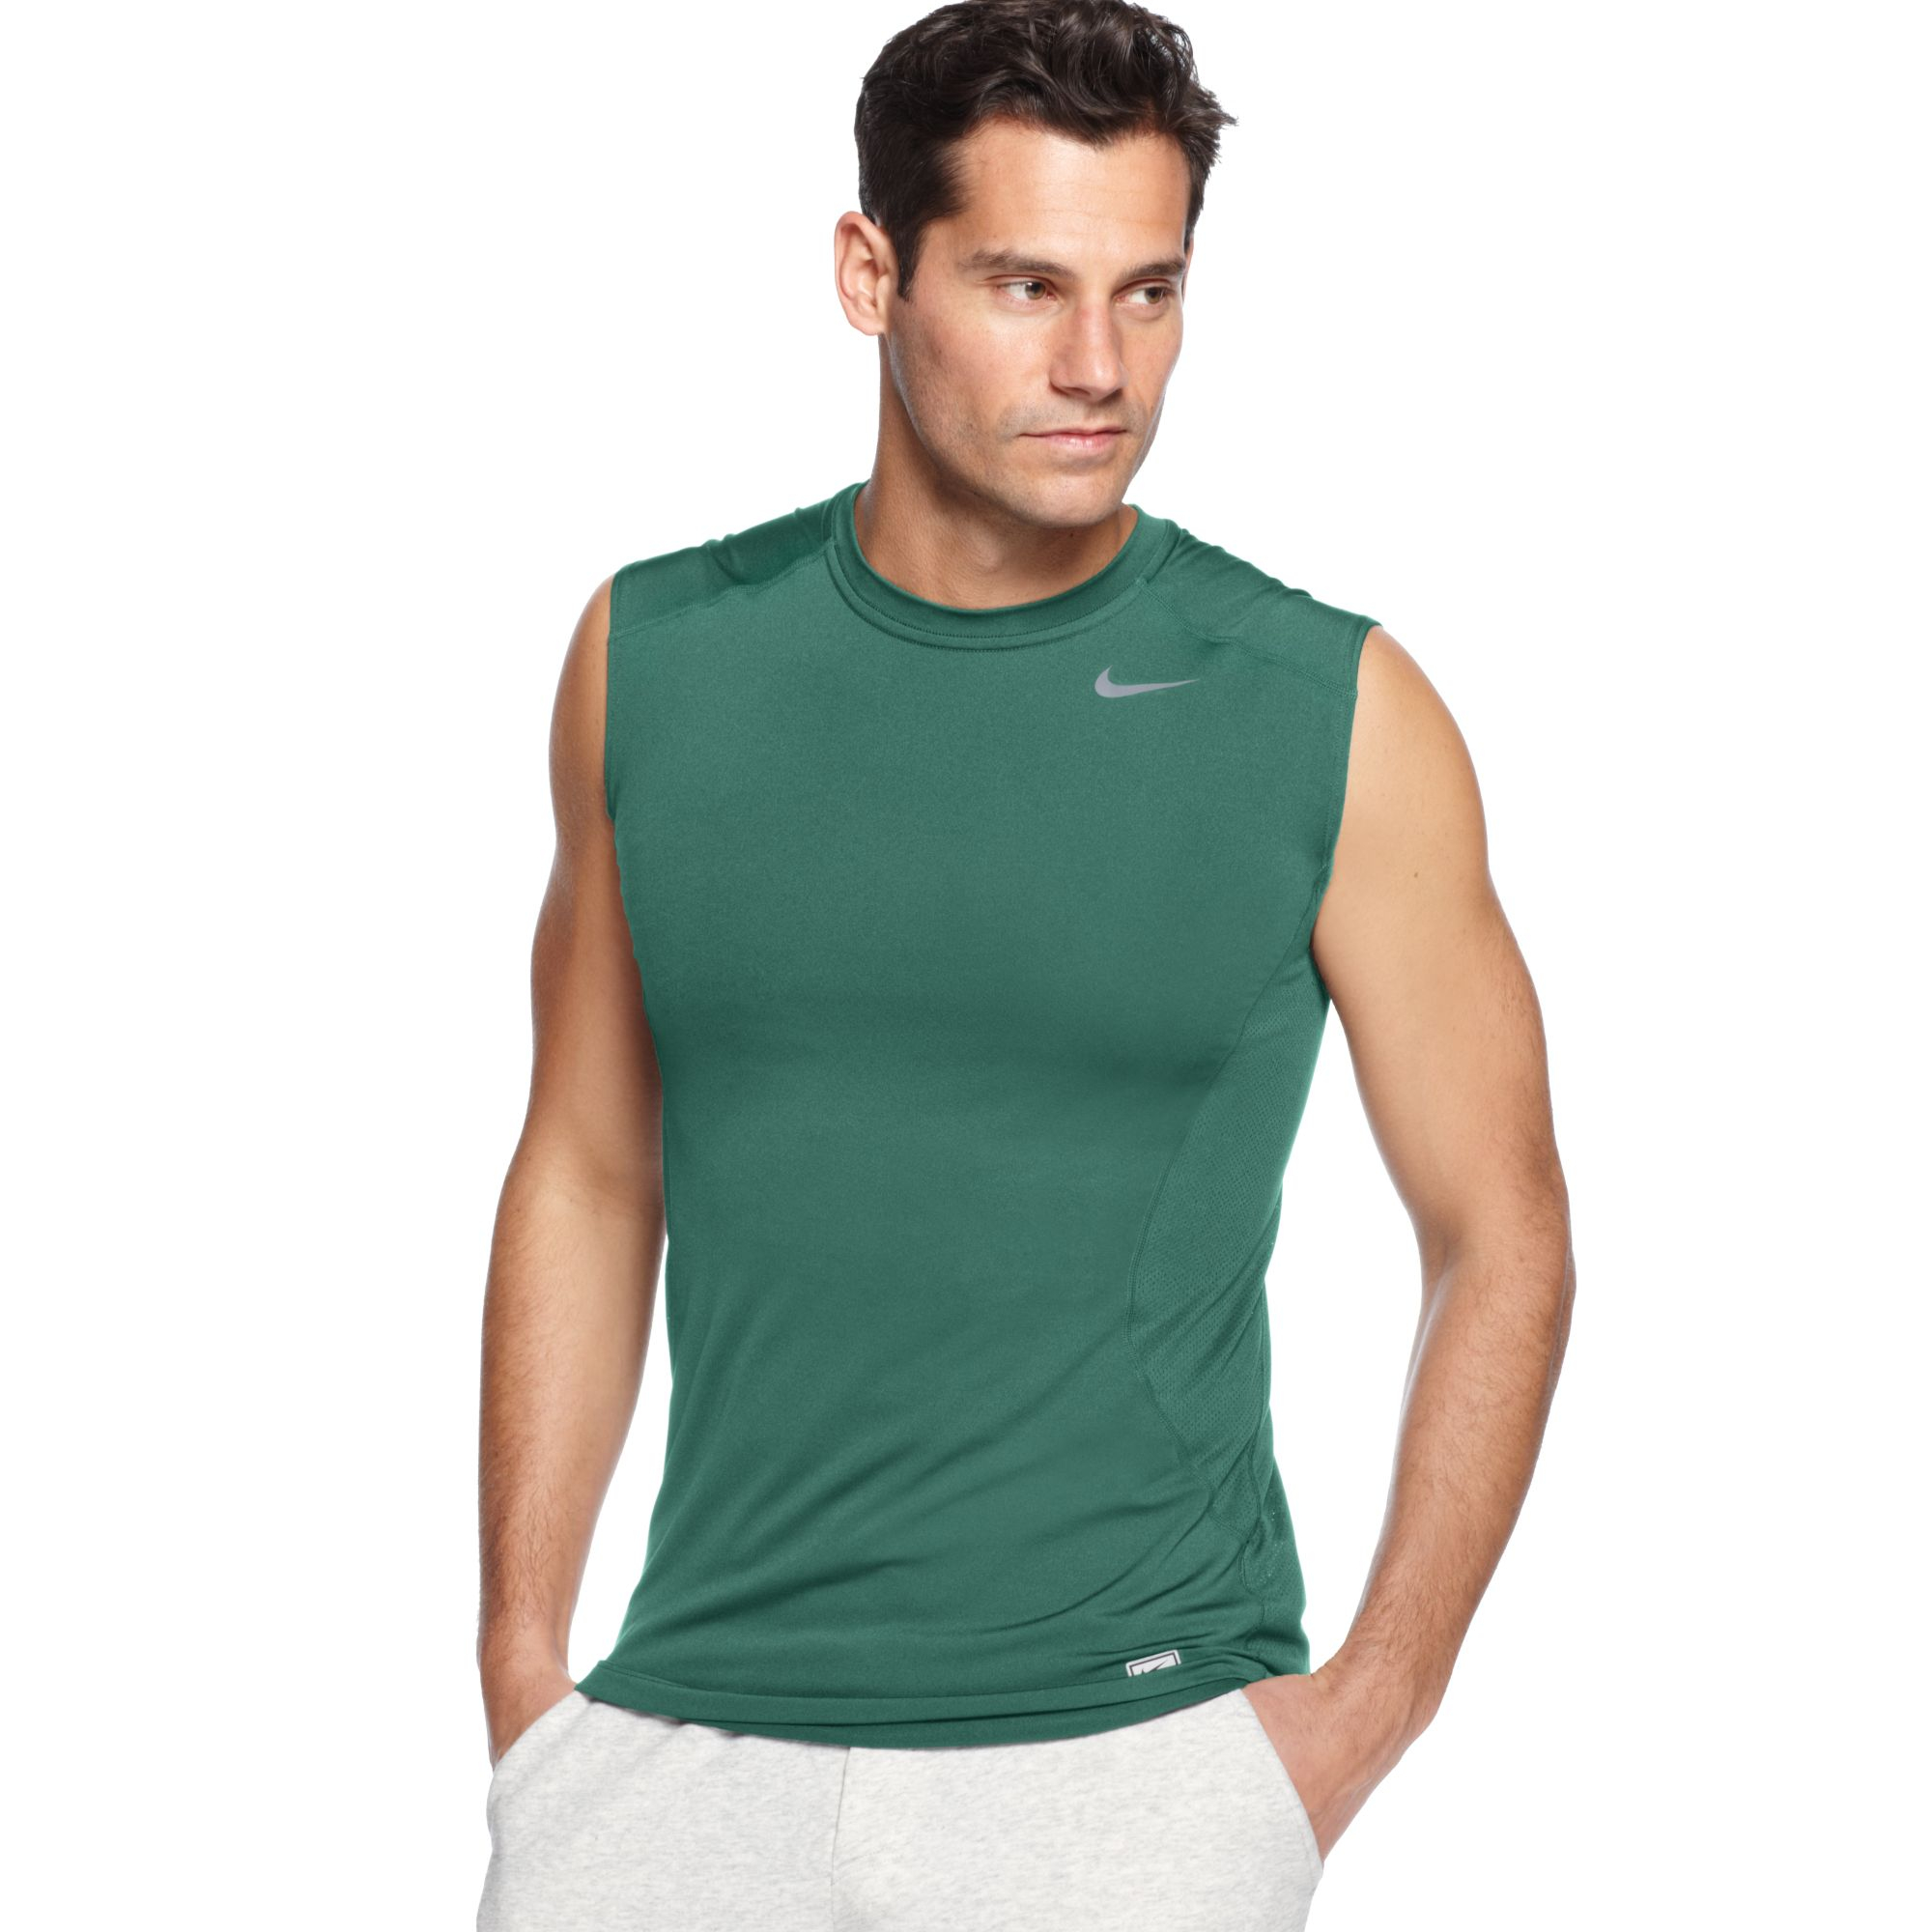 34a7e5c1 Nike Legend Sleeveless T Shirt – EDGE Engineering and Consulting Limited